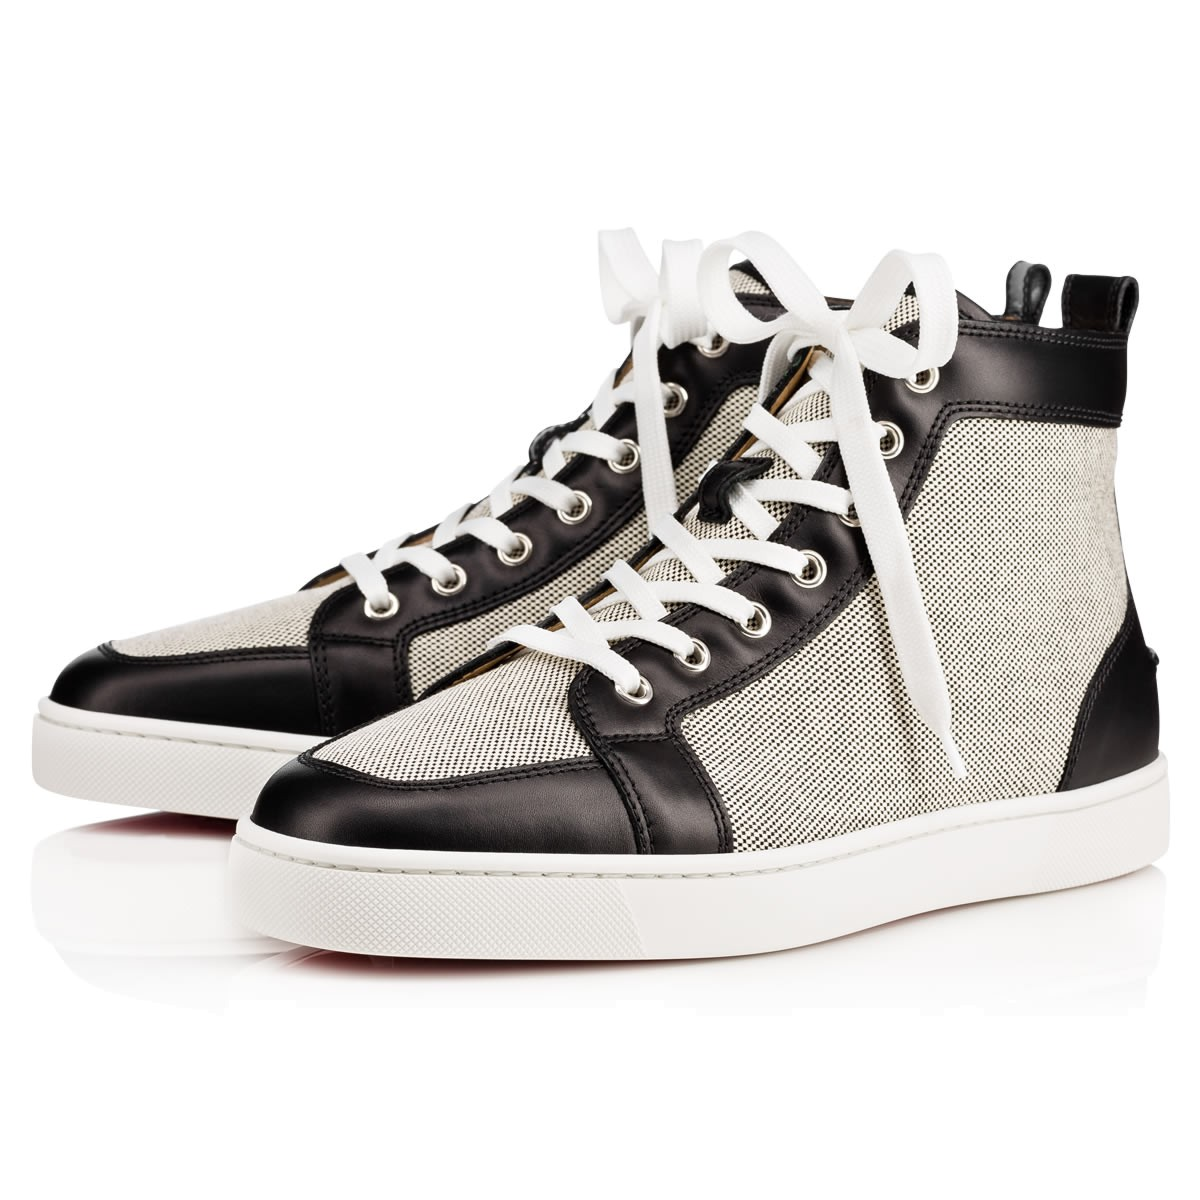 メンズシューズ - Rantus Cotton Men's Flat - Christian Louboutin